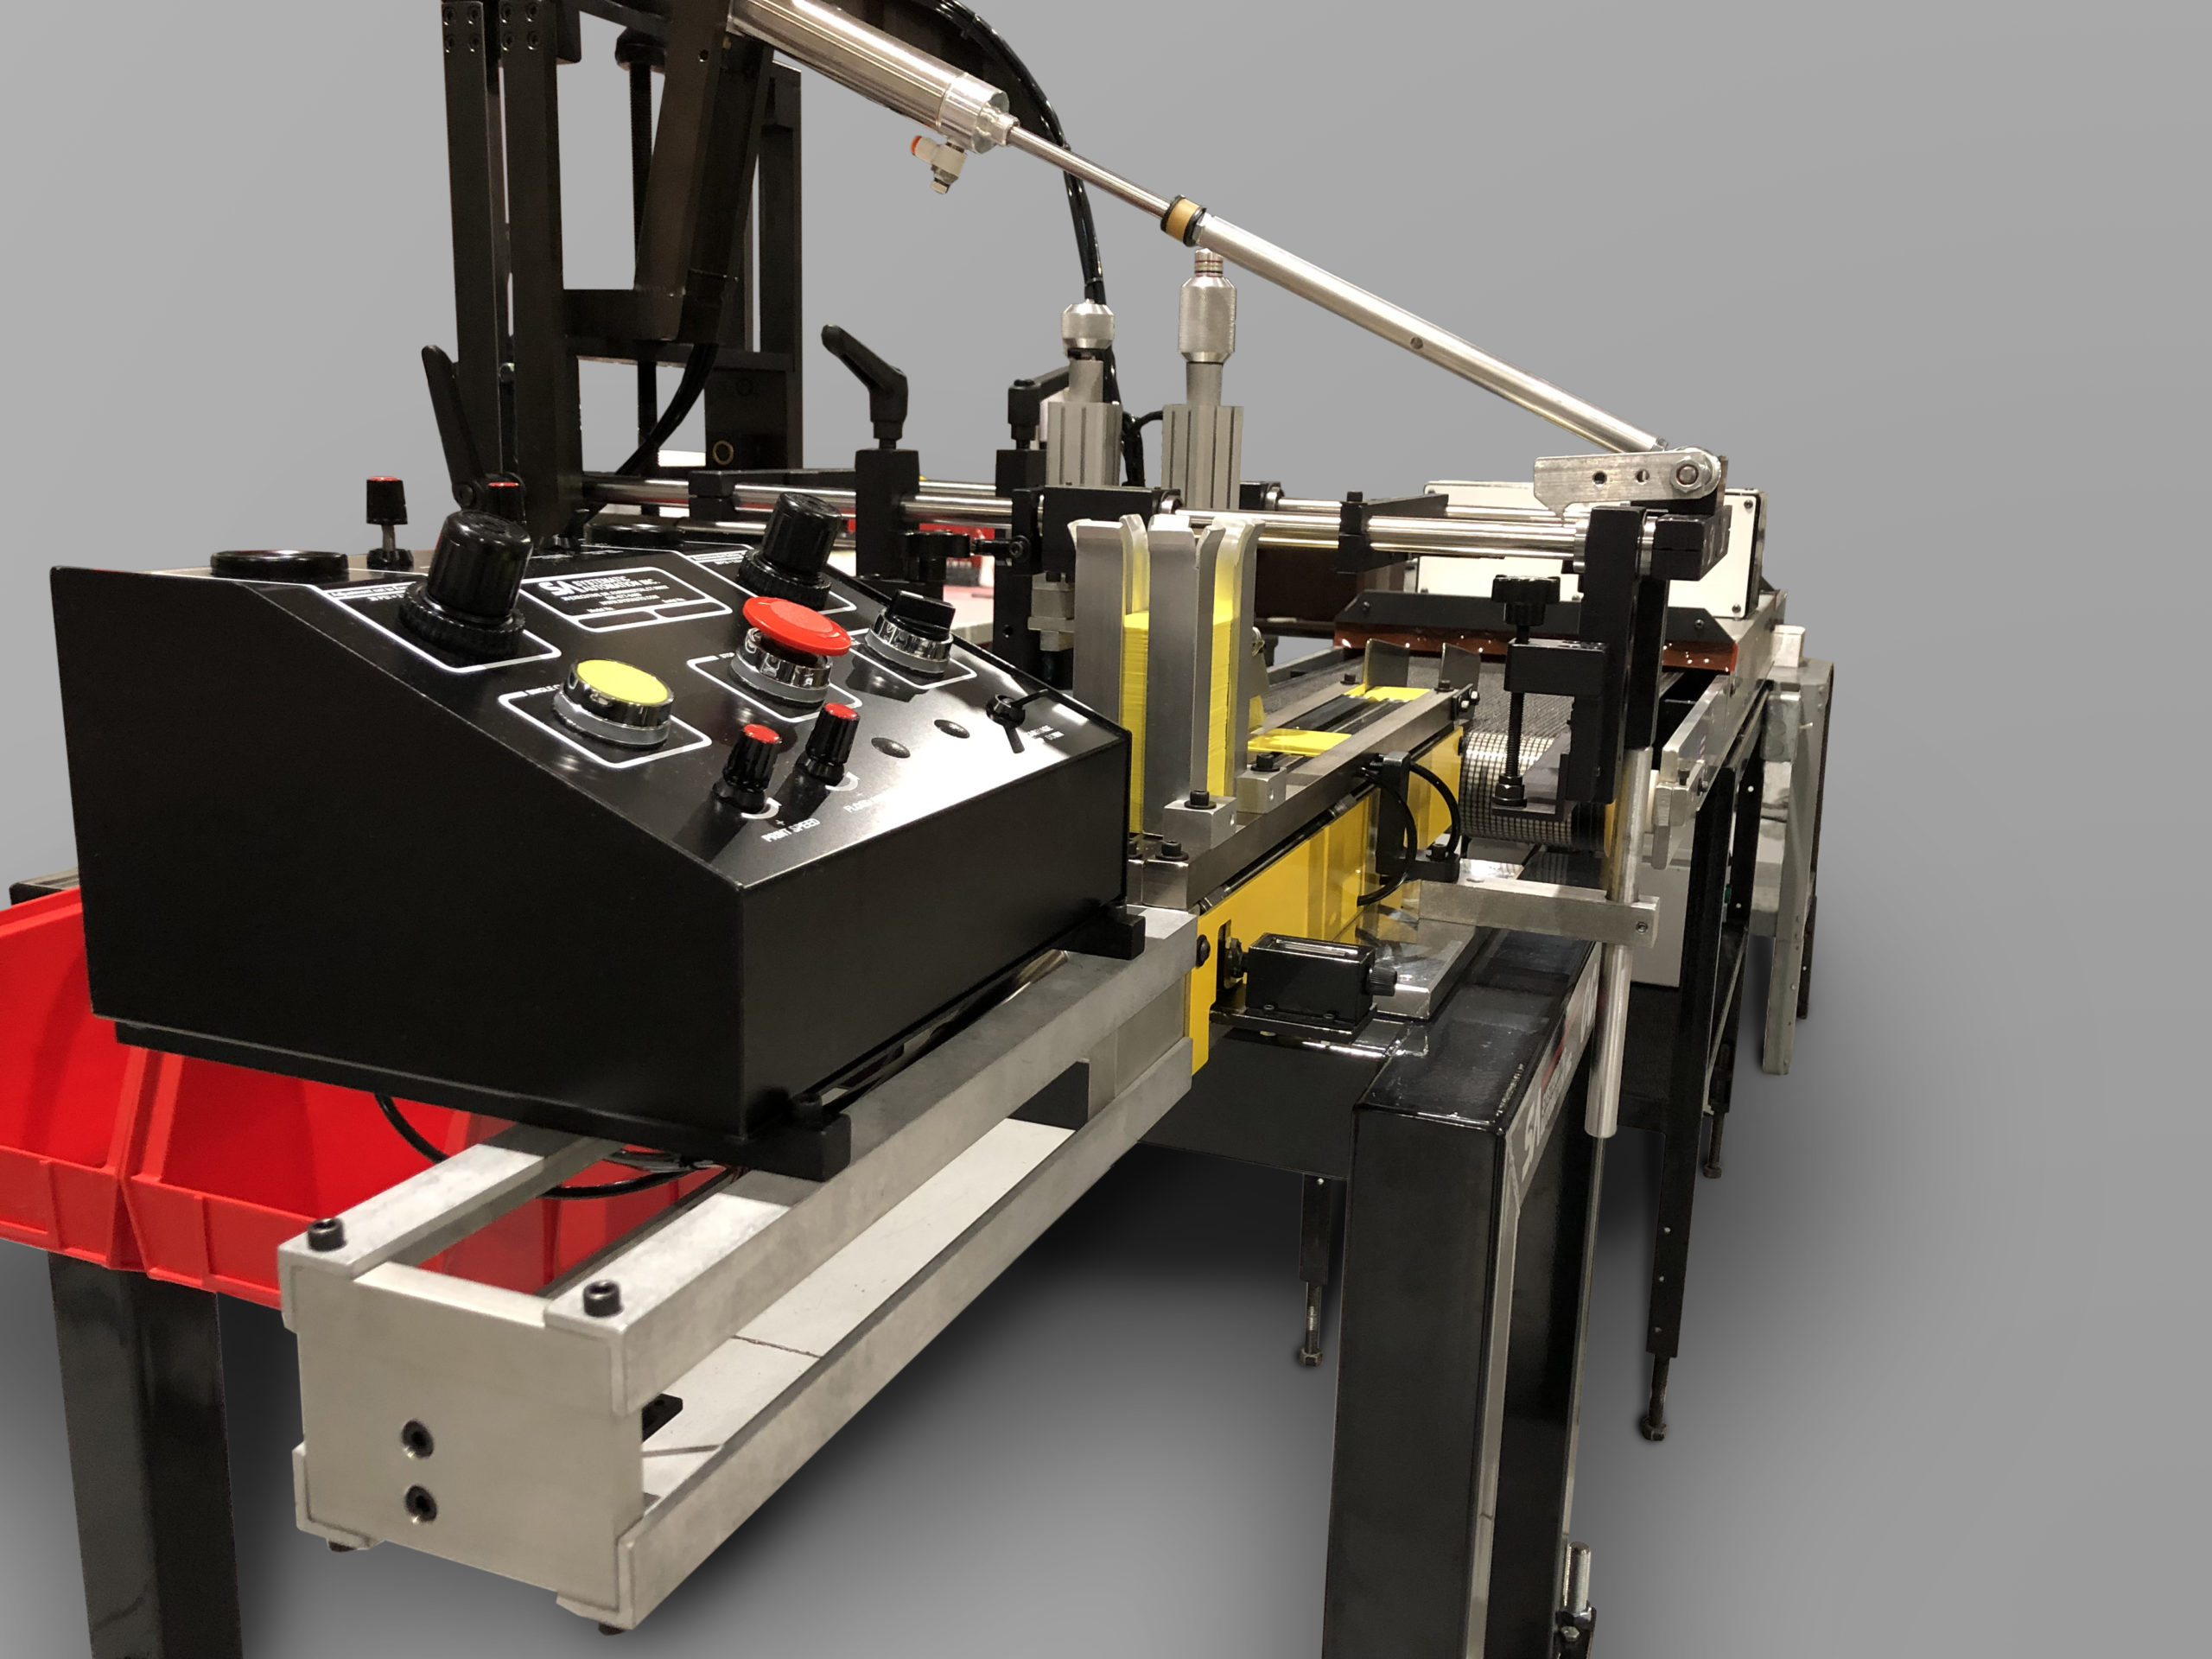 card printer, screen printer, cc-5000, systematic automation